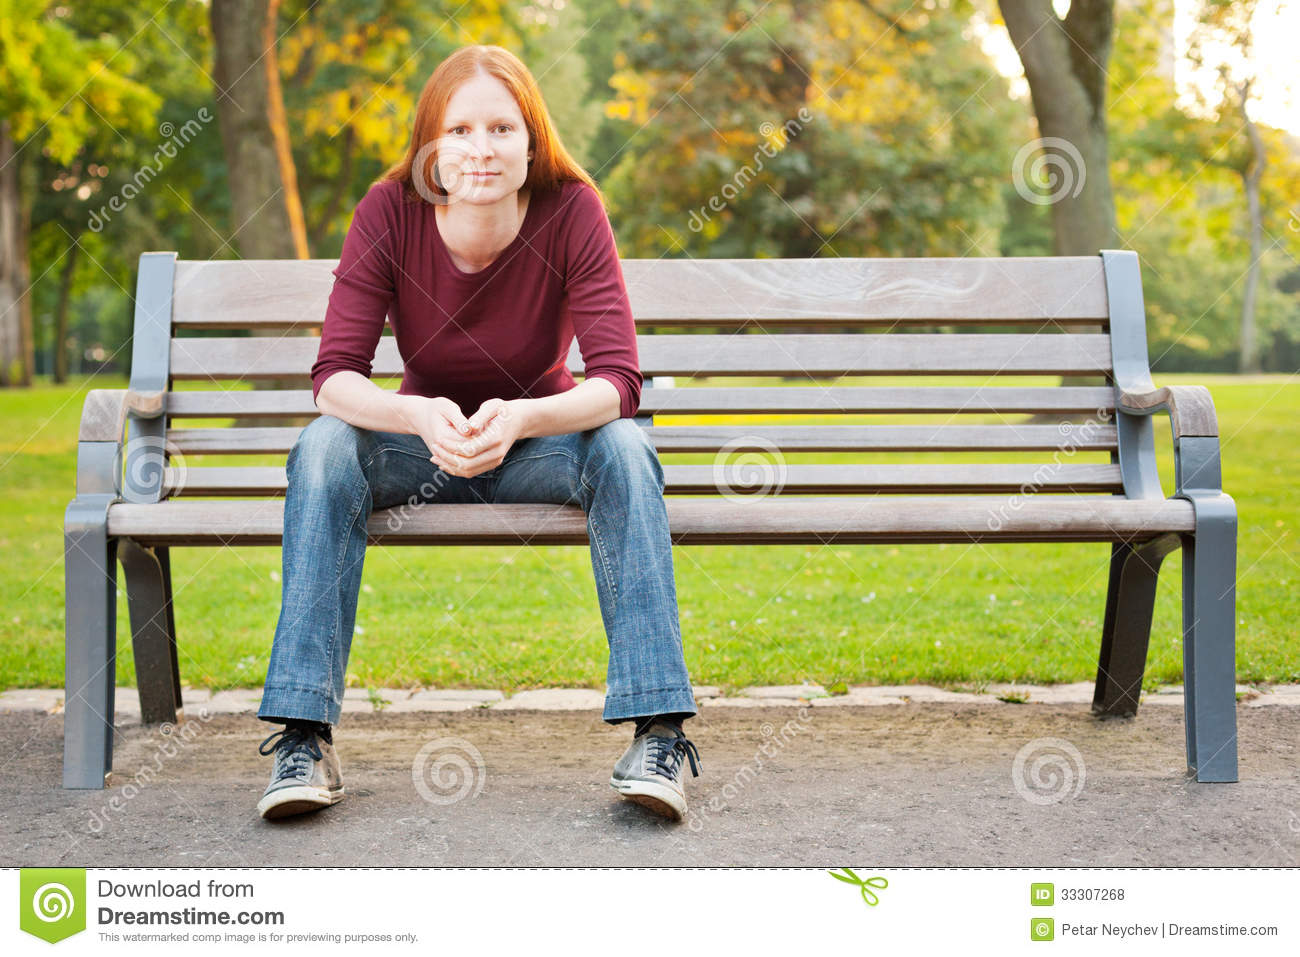 a woman waiting on a bench in a park royalty free stock